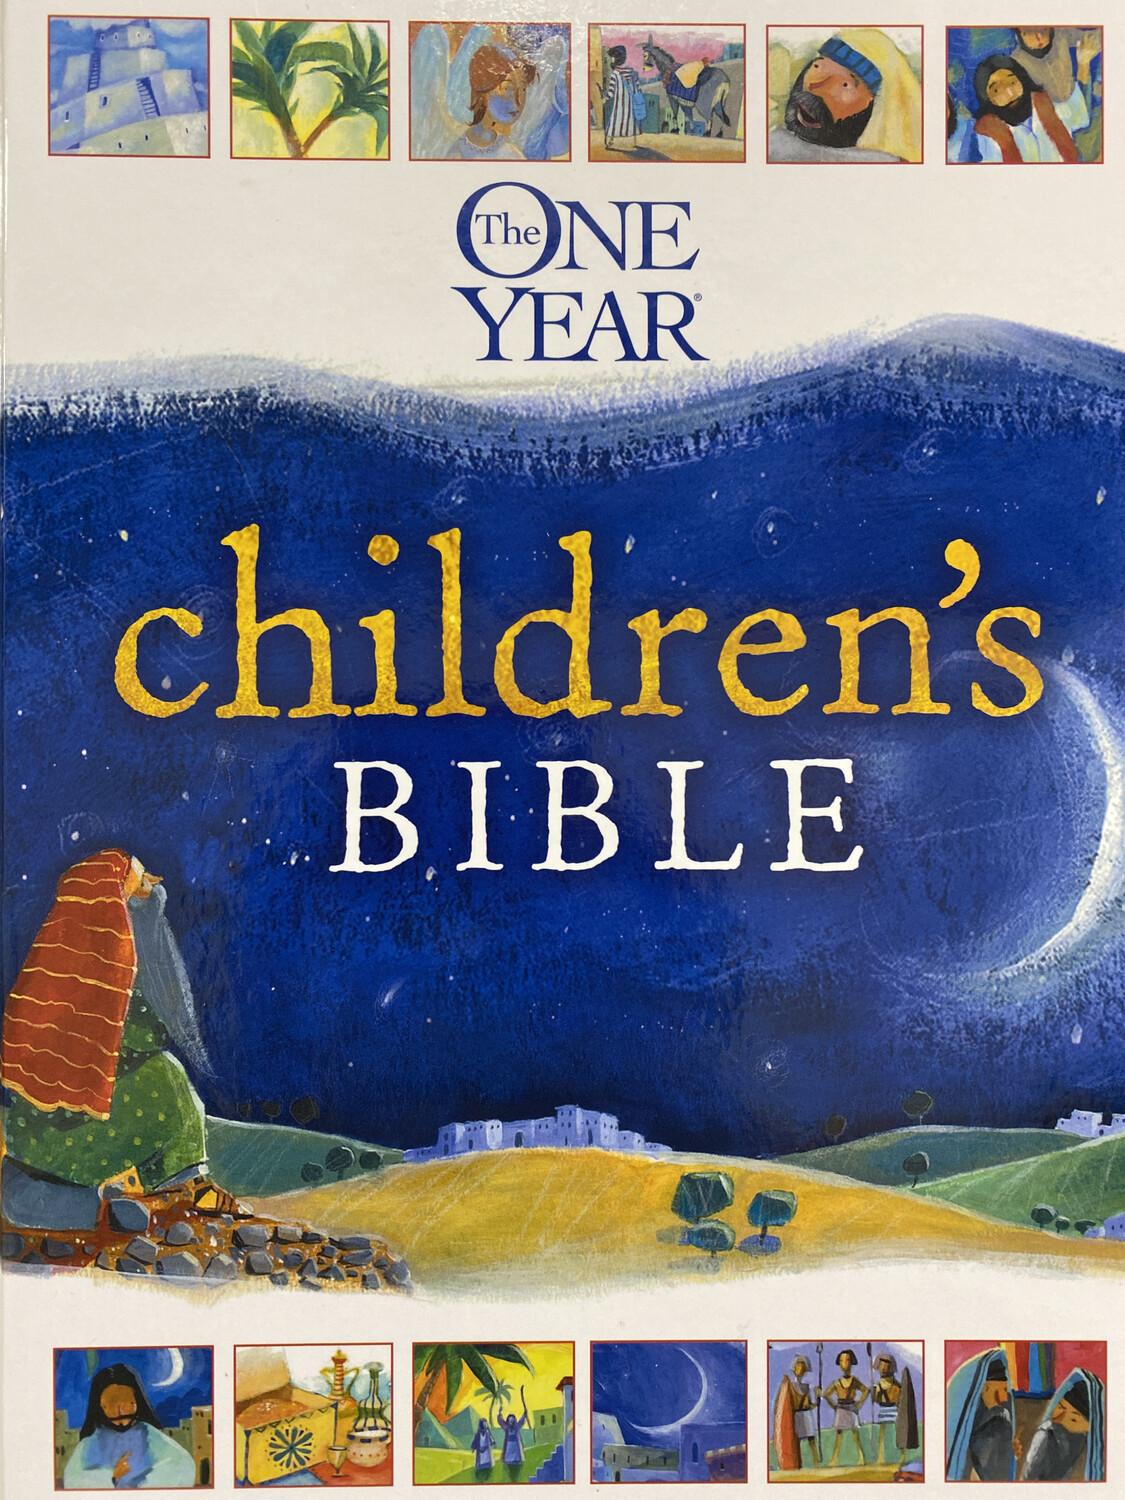 DAVIES, The One Year Children's Bible